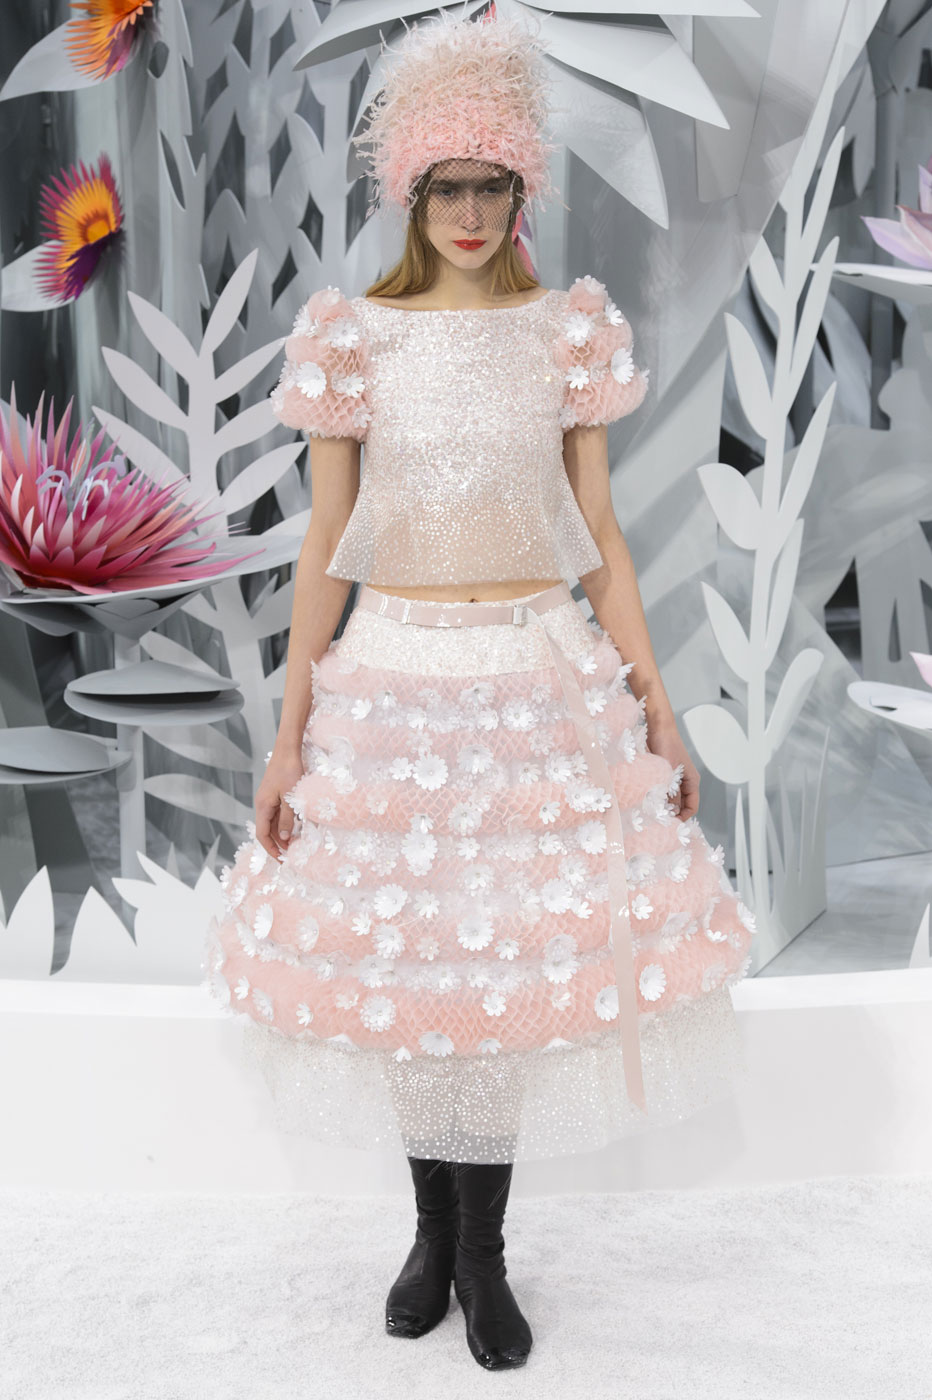 Chanel-fashion-runway-show-haute-couture-paris-spring-summer-2015-the-impression-151